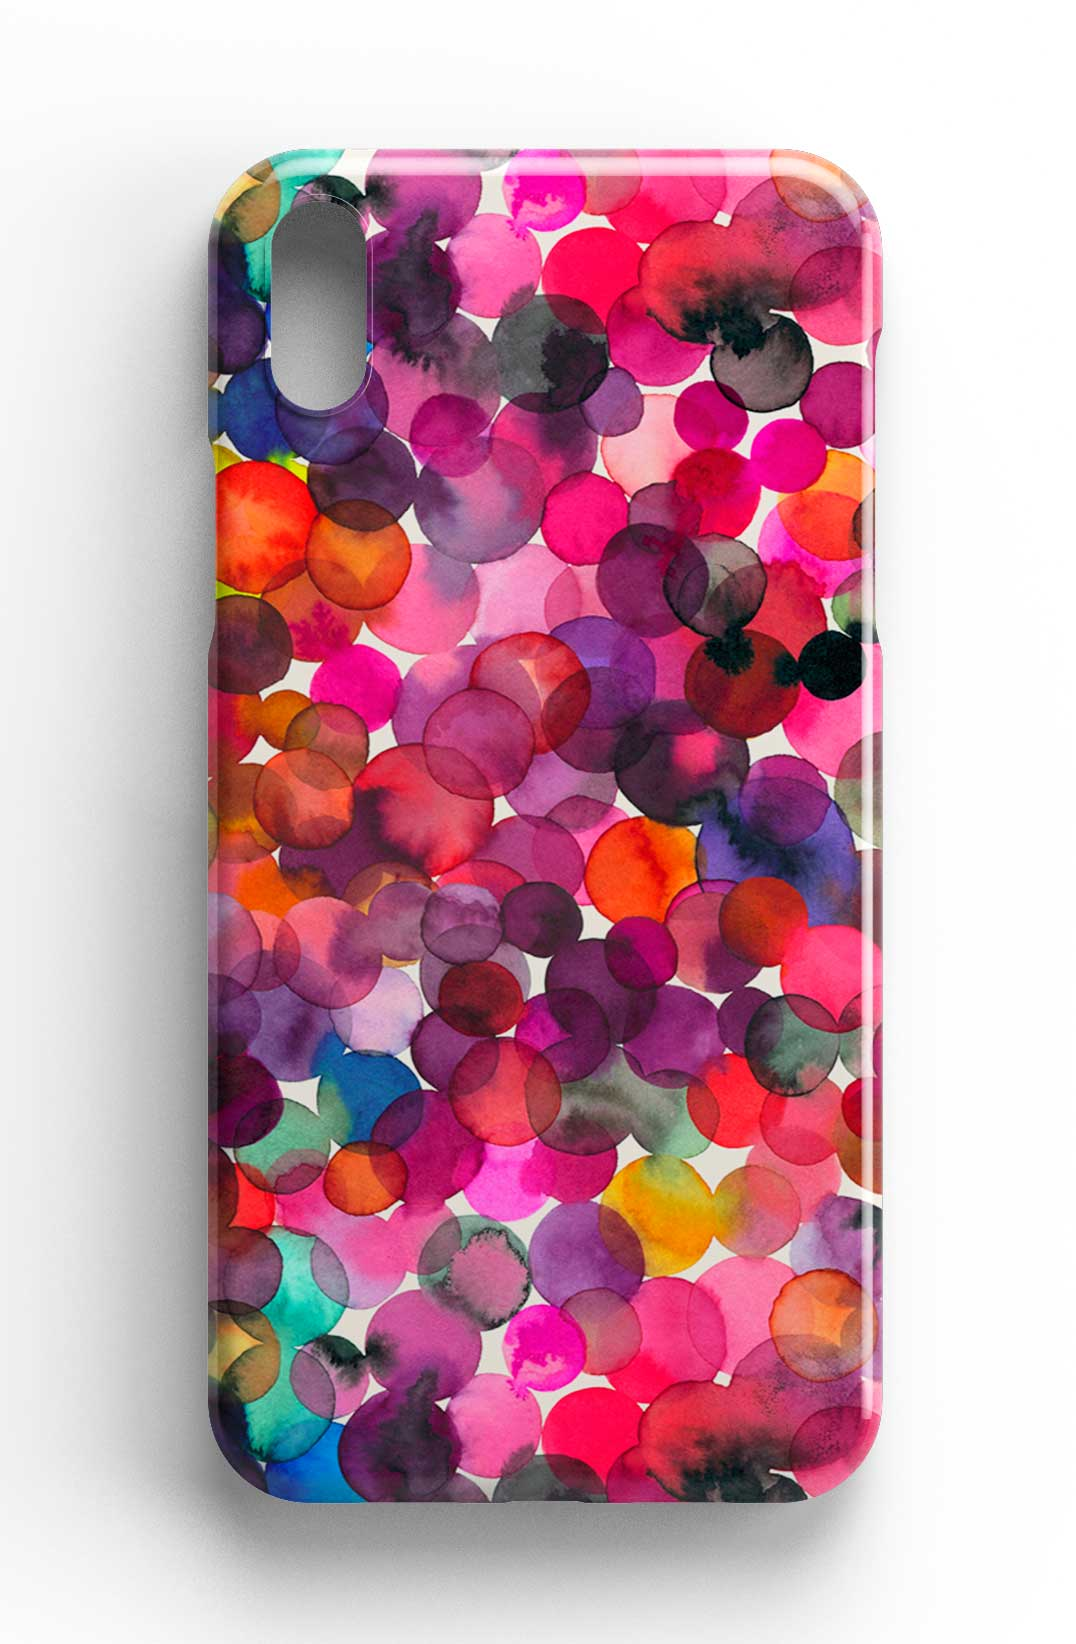 Ninola Design Overlapped Watercolor Dots Phone Case